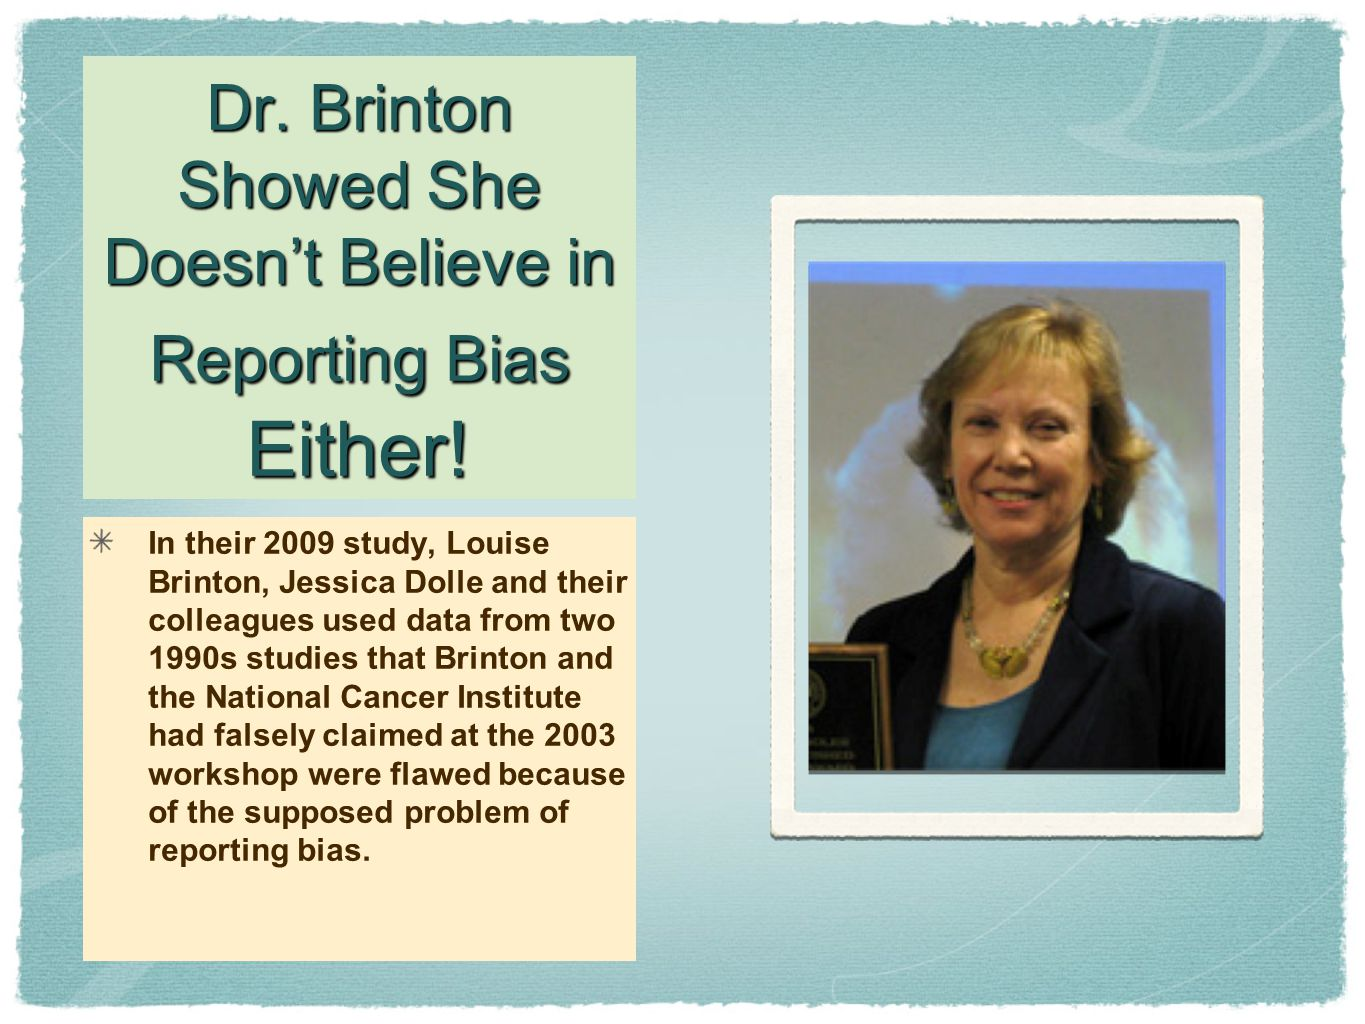 Dr. Brinton Showed She Doesn't Believe in Reporting Bias Either.